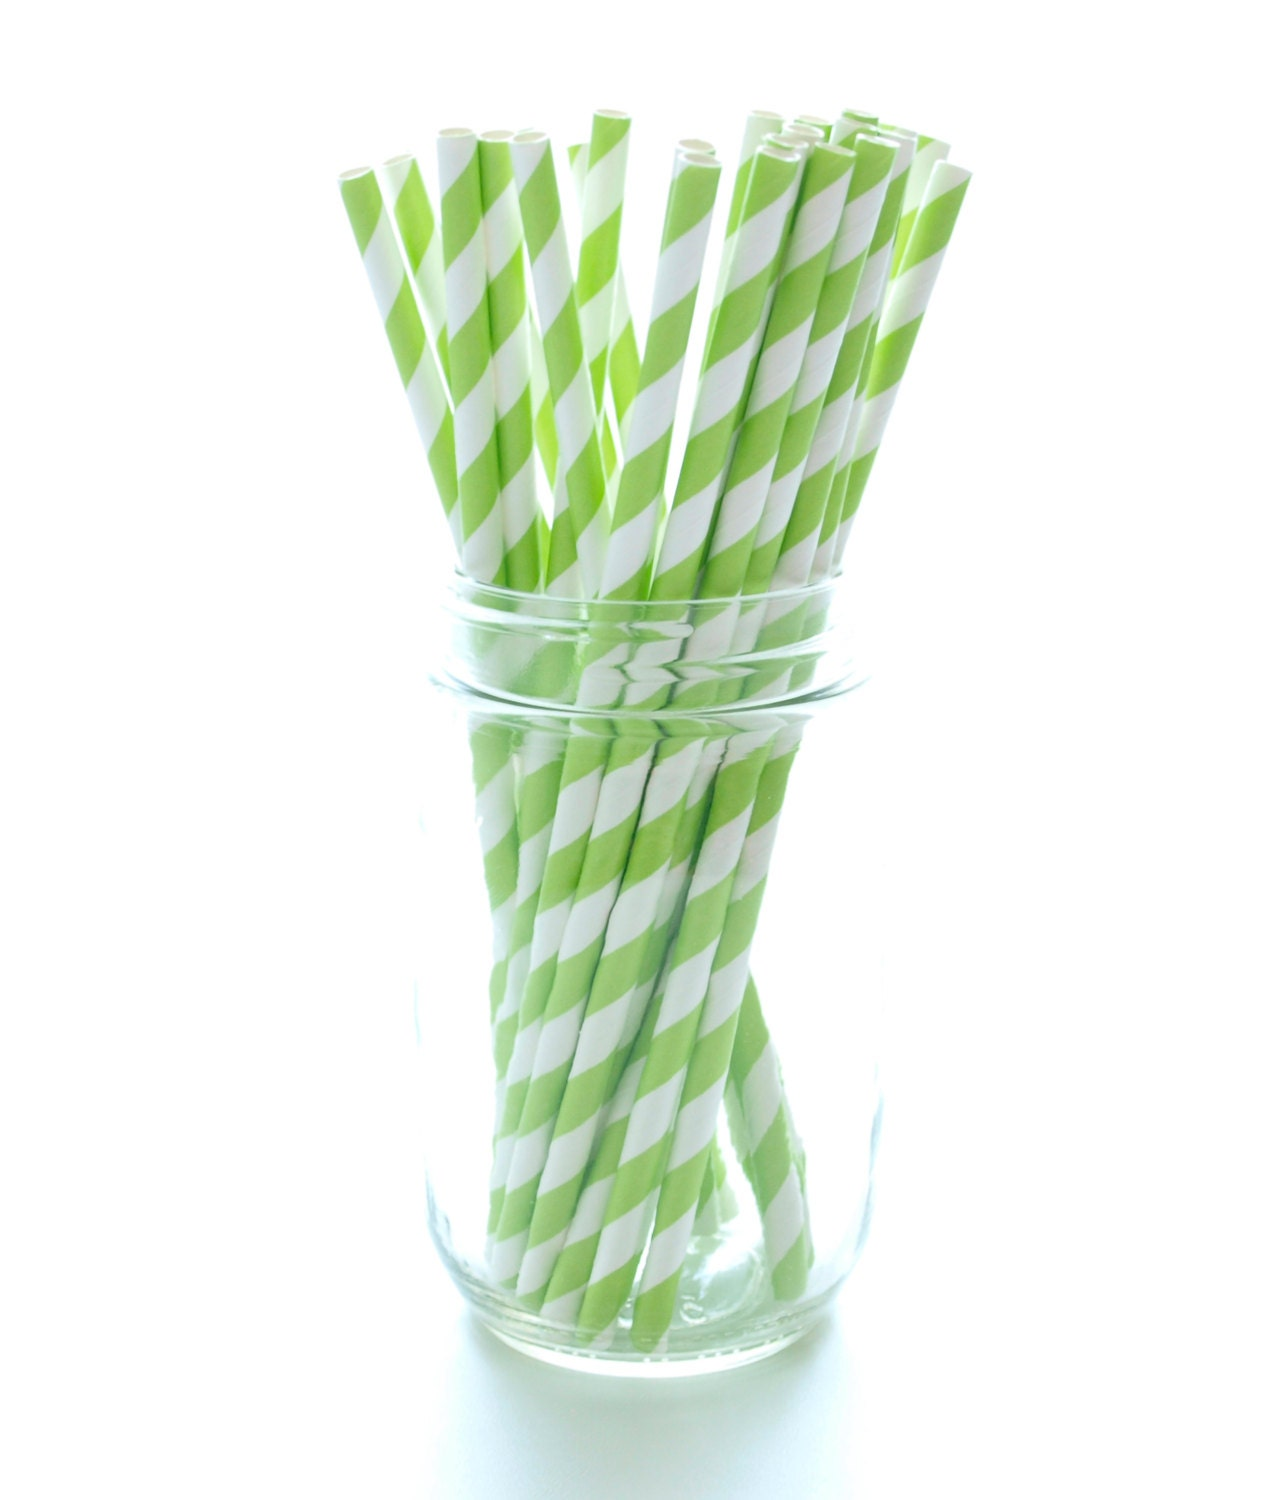 paper straws bulk High quality biodegradable earth friendly paper drinking straws free delivery and shipped from the uk for parties and special occasions including: weddings, anniversaries, baby shower, celebrations, corporate.